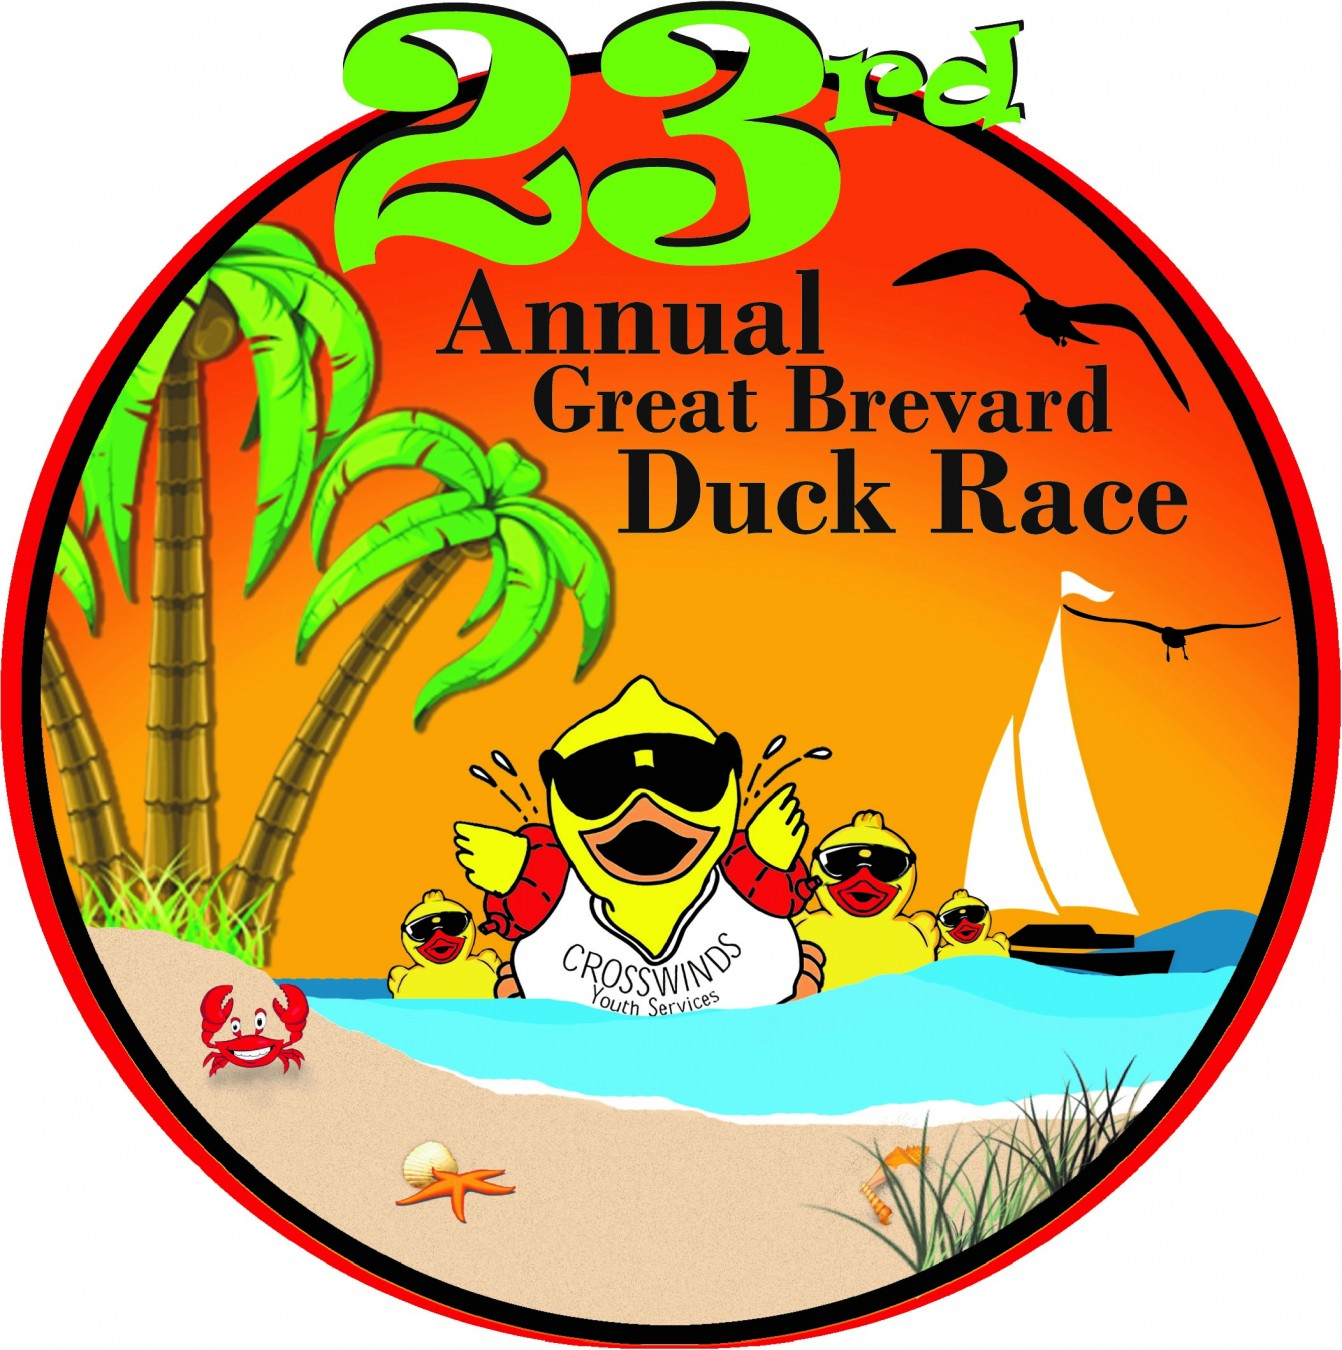 The 23rd Annual Great Brevard Duck Race